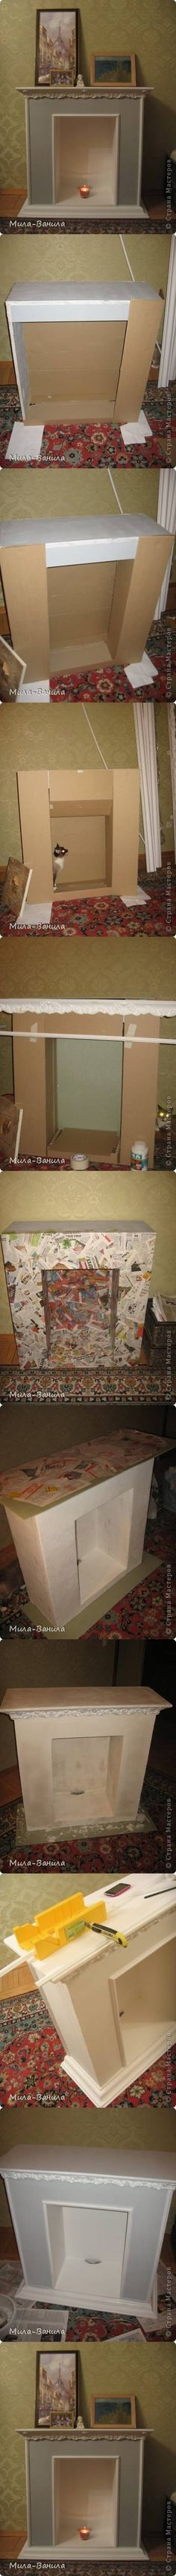 DIY Cardboard Decorated Fireplace via usefuldiy.com